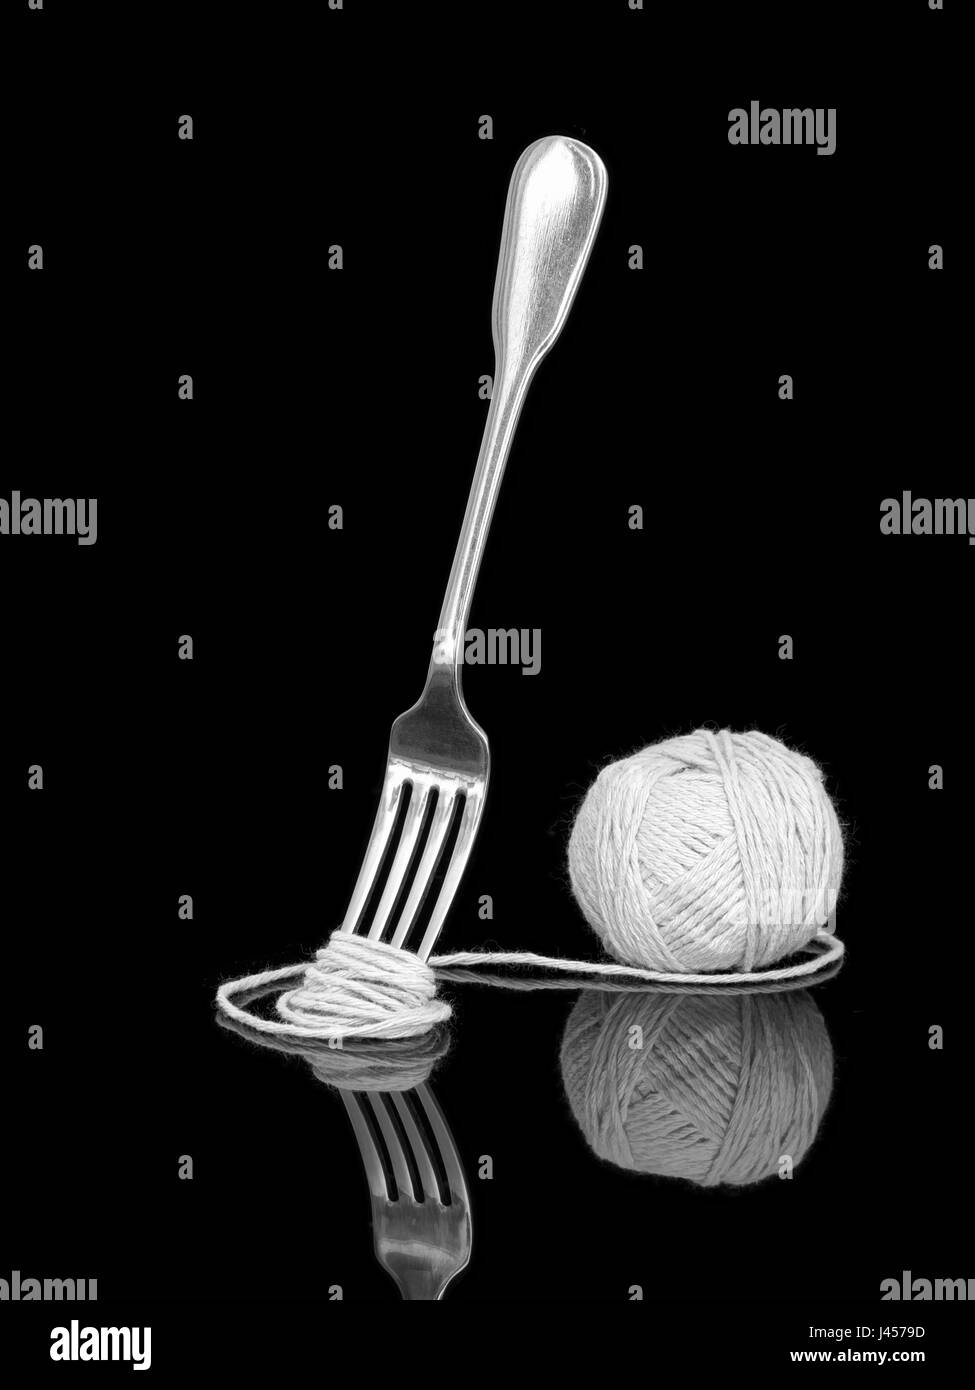 Italy or EU bureaucracy, complexity concept. Aka Spaghetti practice aka how long is a piece of string. Monochrome - Stock Image